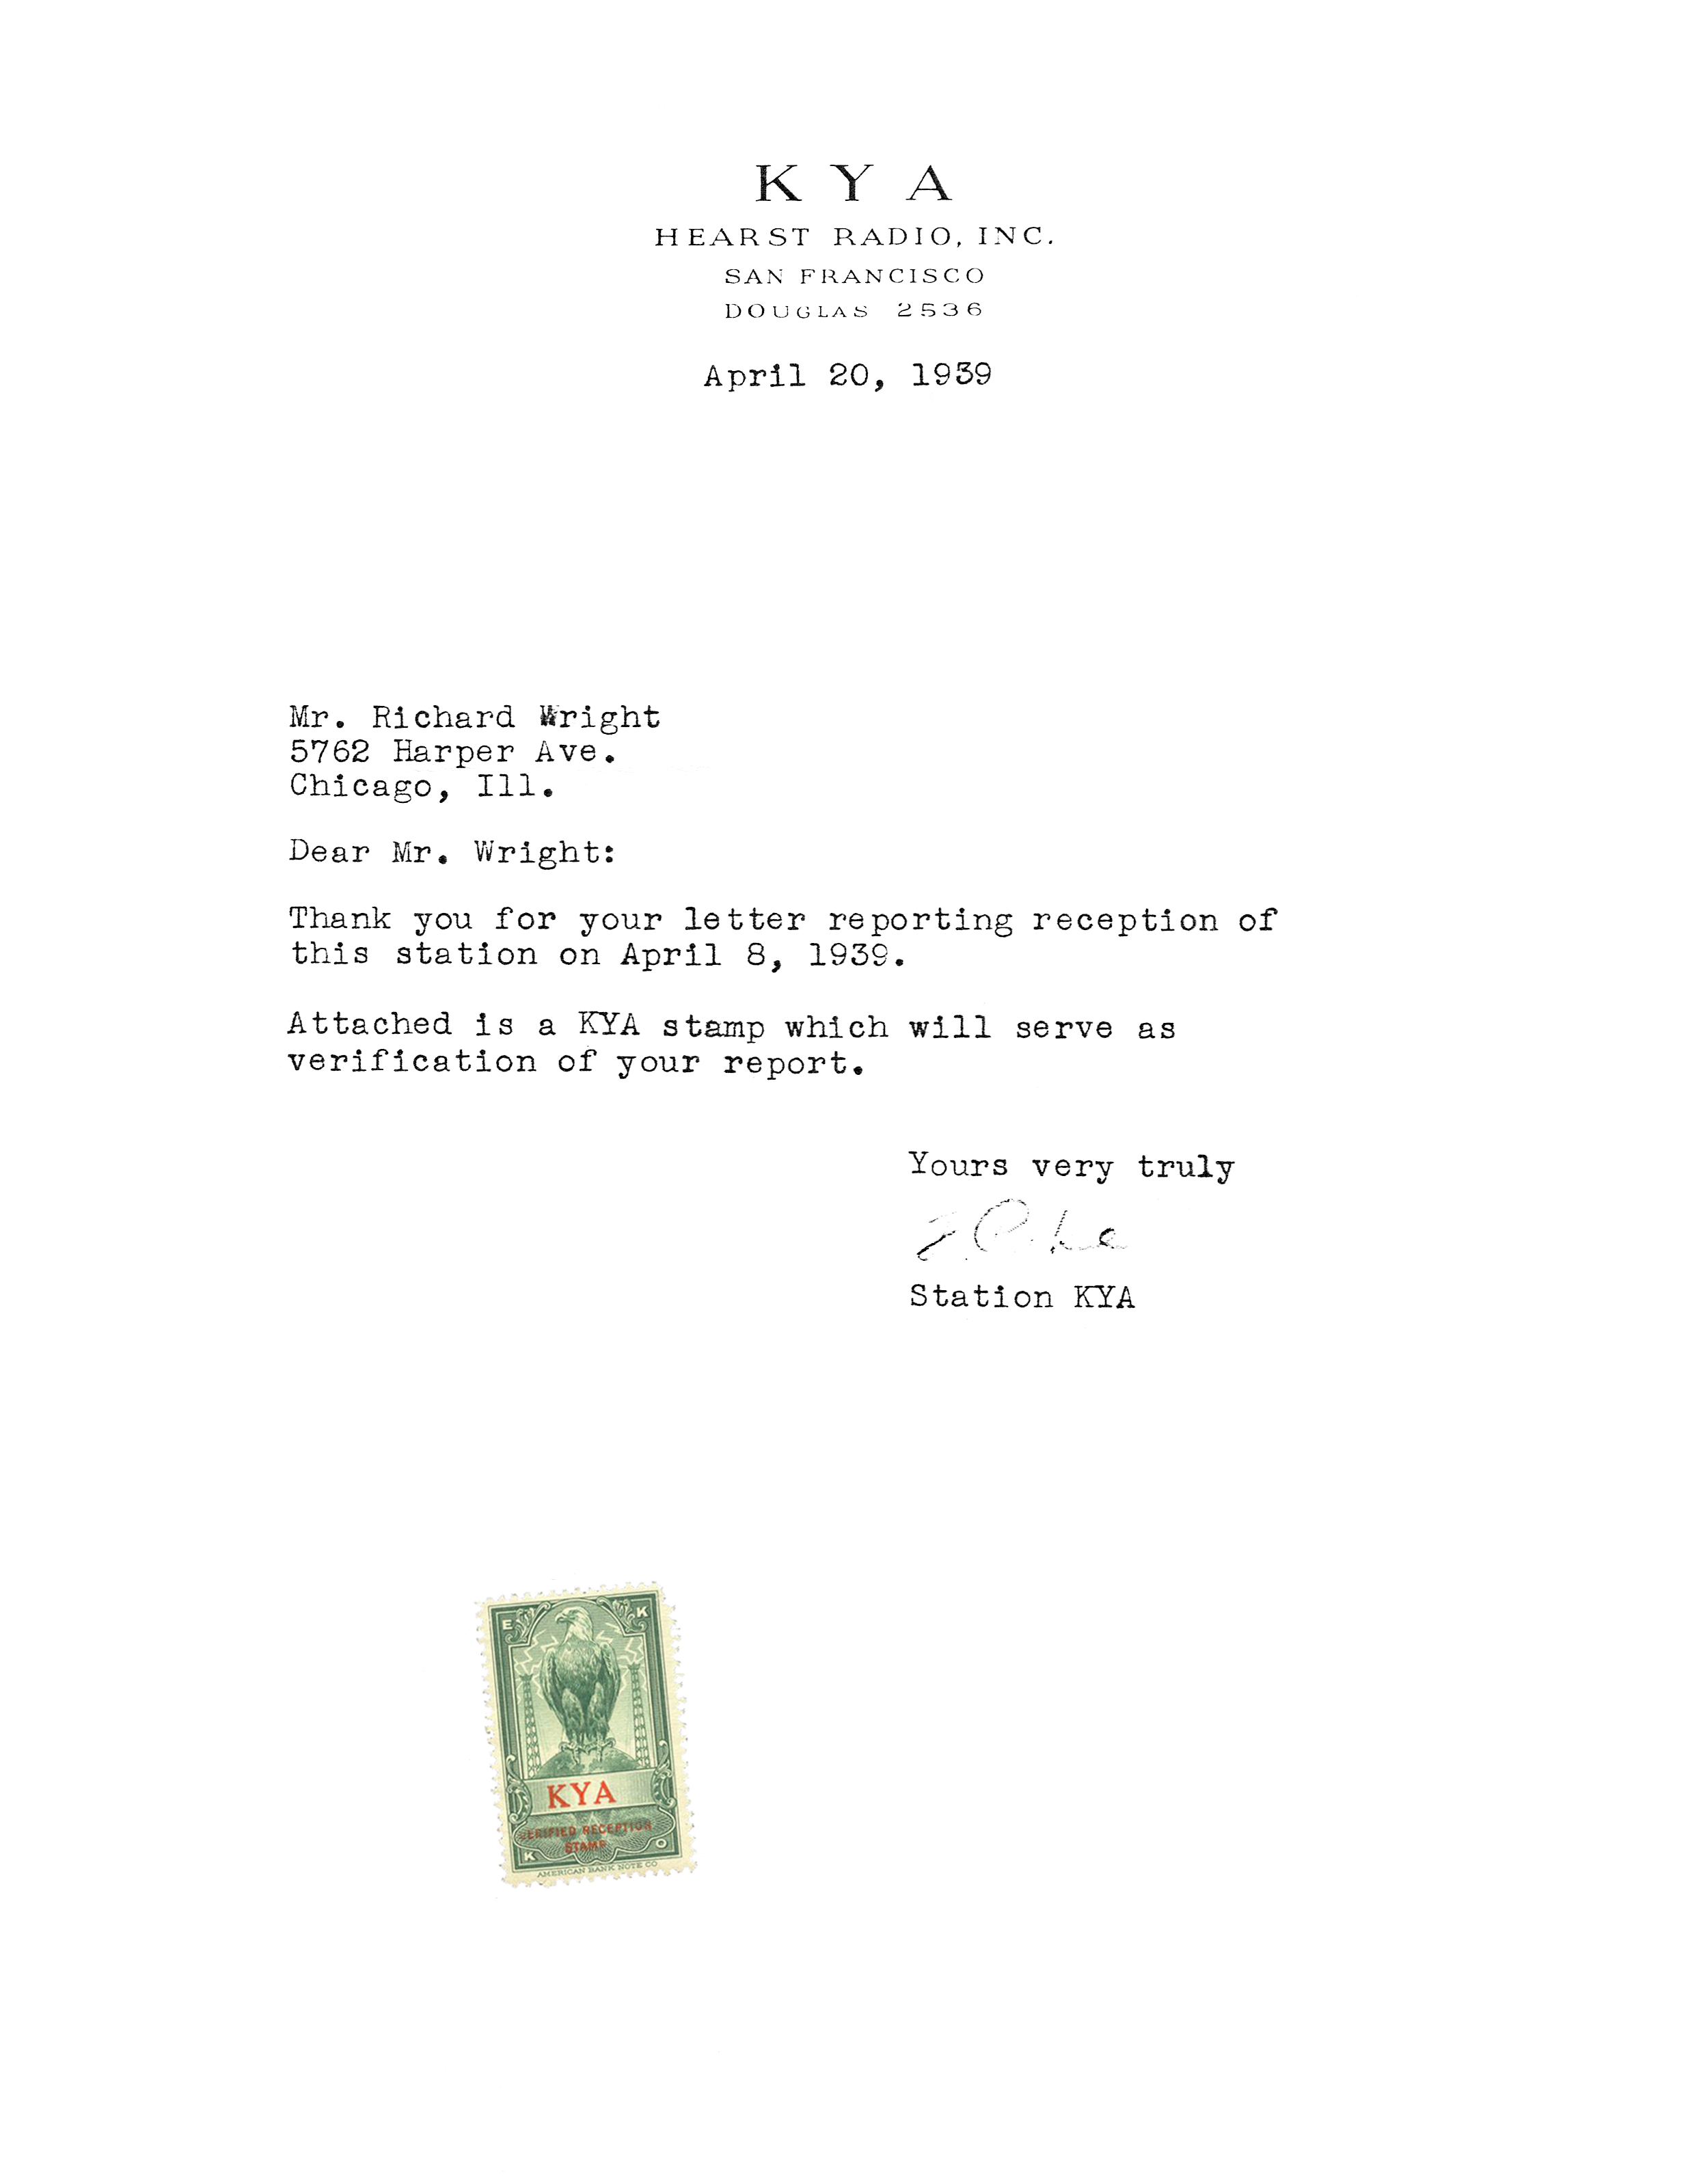 kya_verification-letter_1939